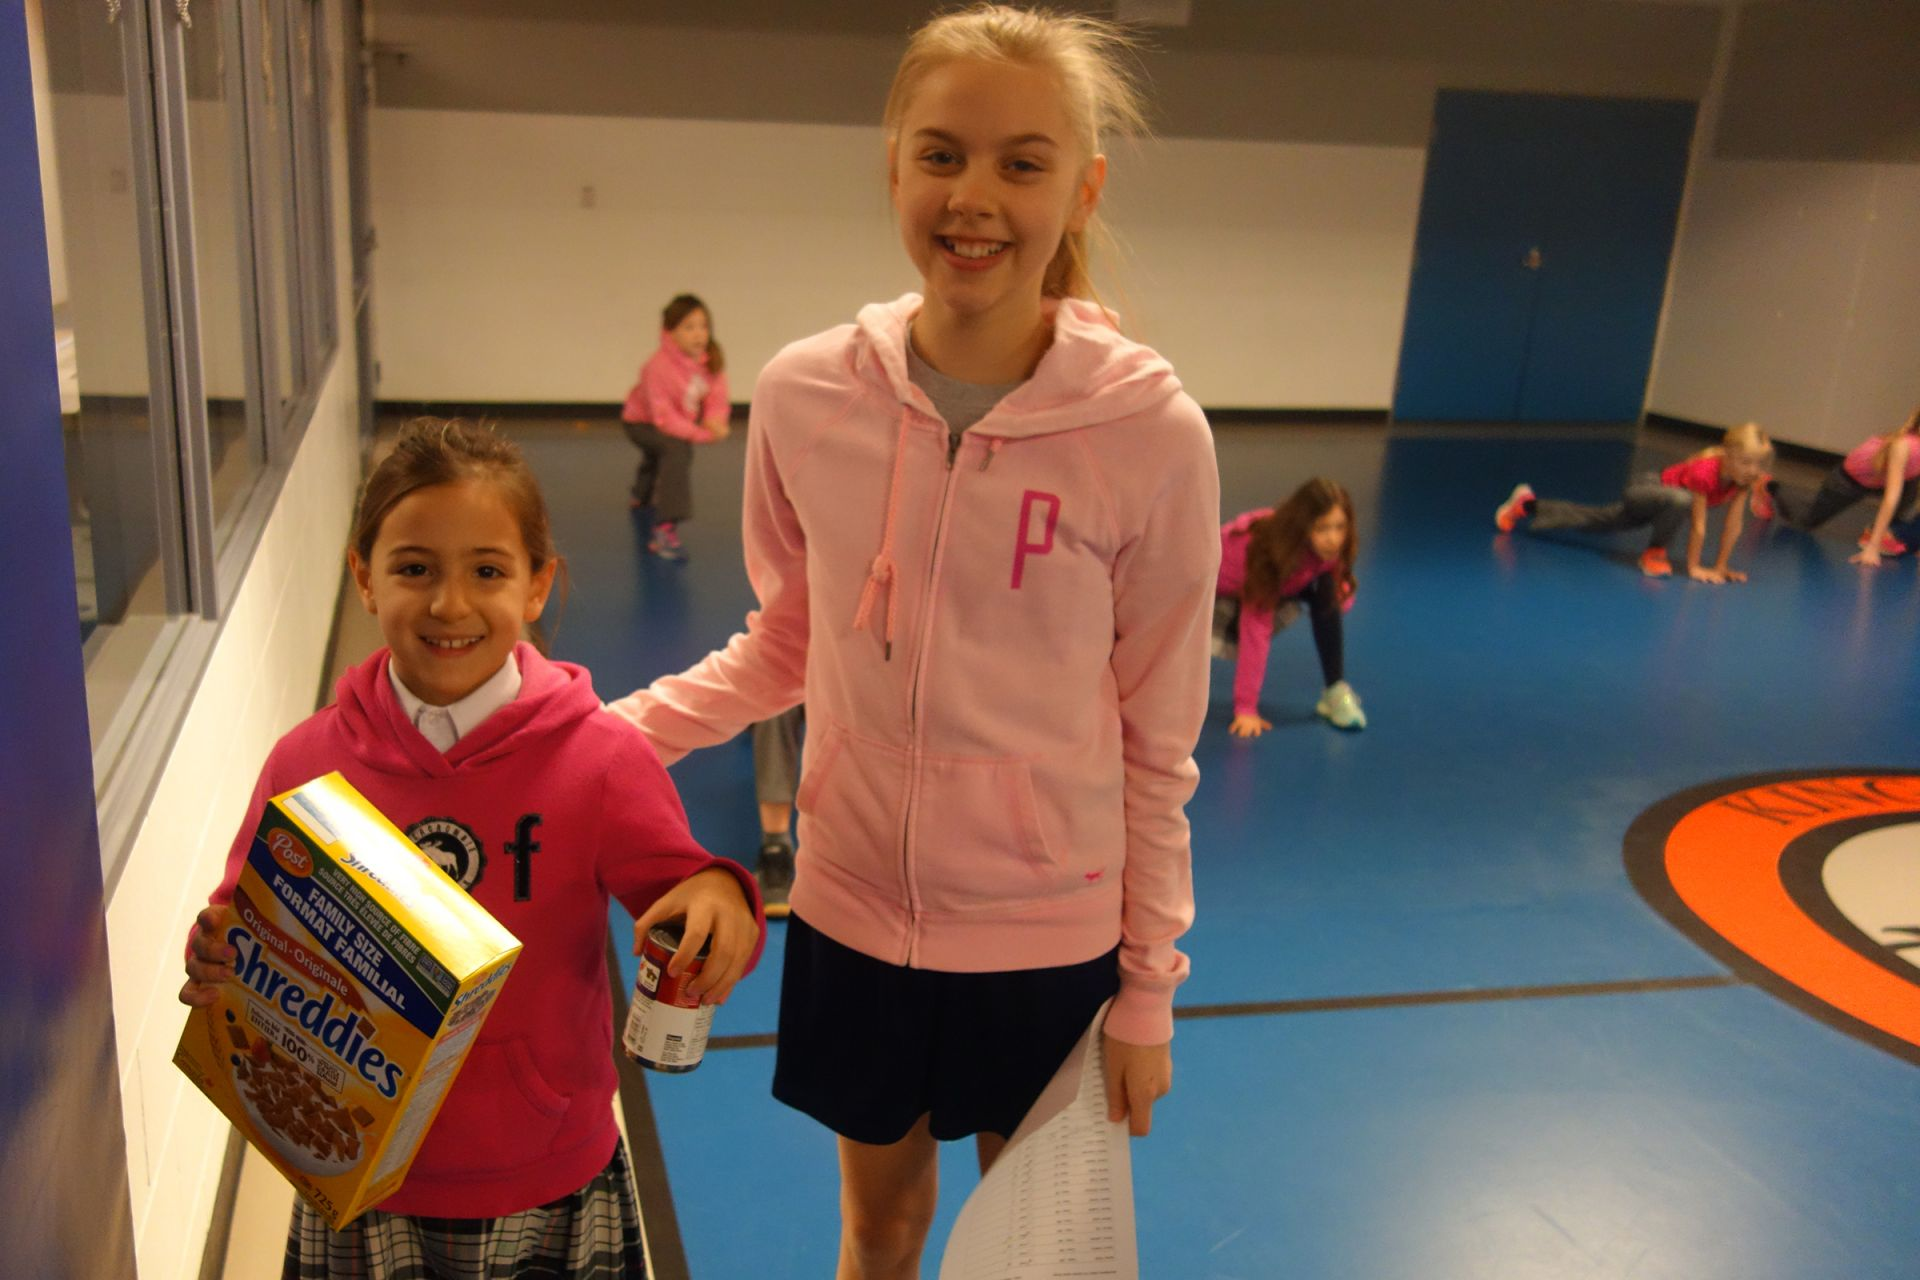 Two grade 7 students led a dance workship for grade 3 students who brought a food donation for the Mississauga Food Bank to each of the sessions.